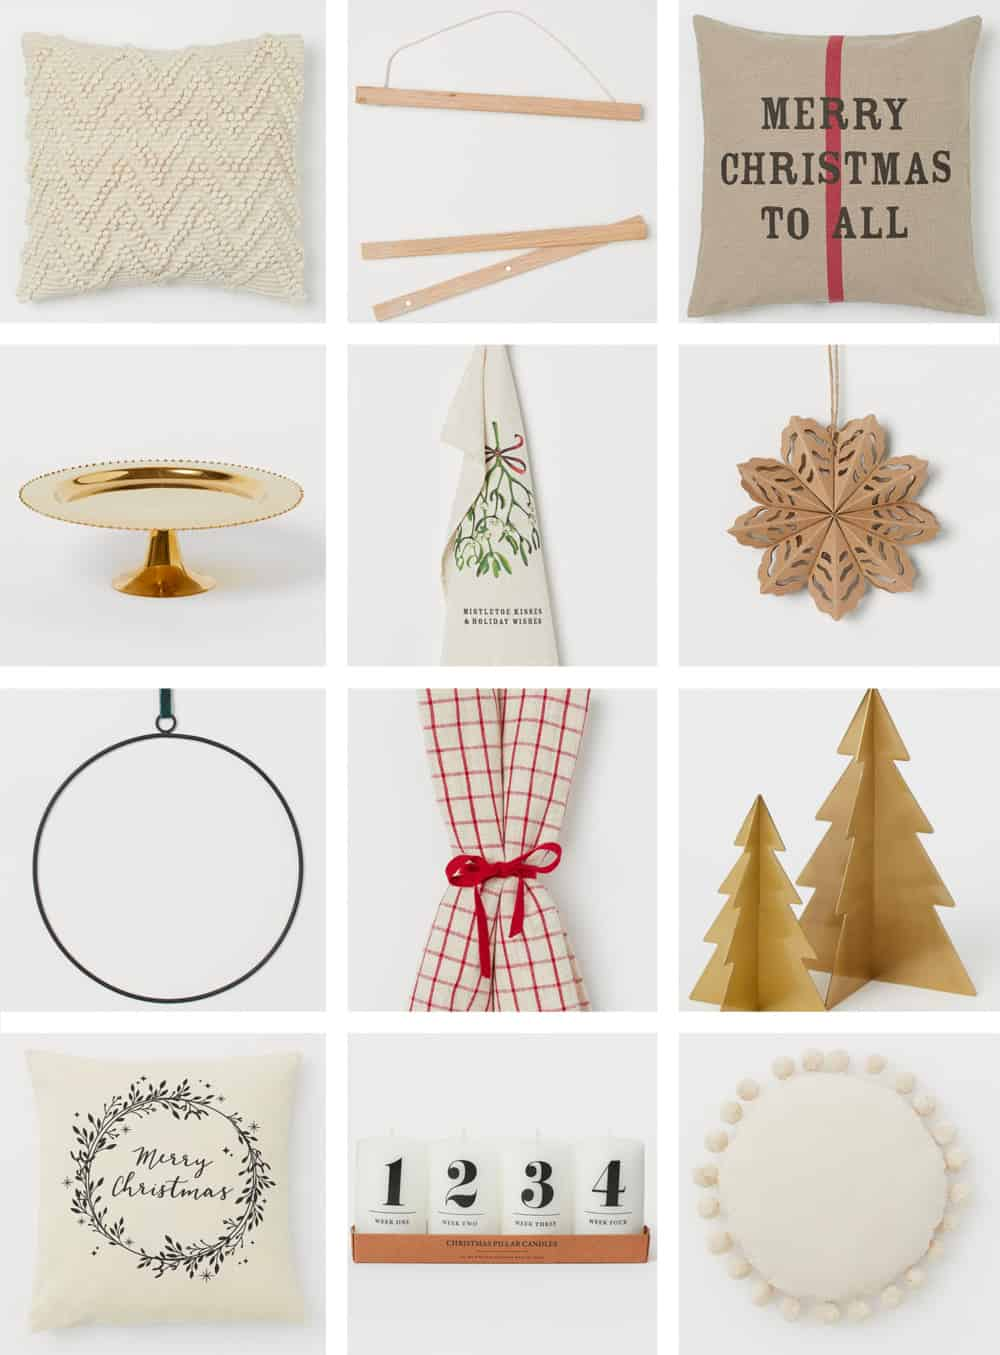 Christmas decor from H&M